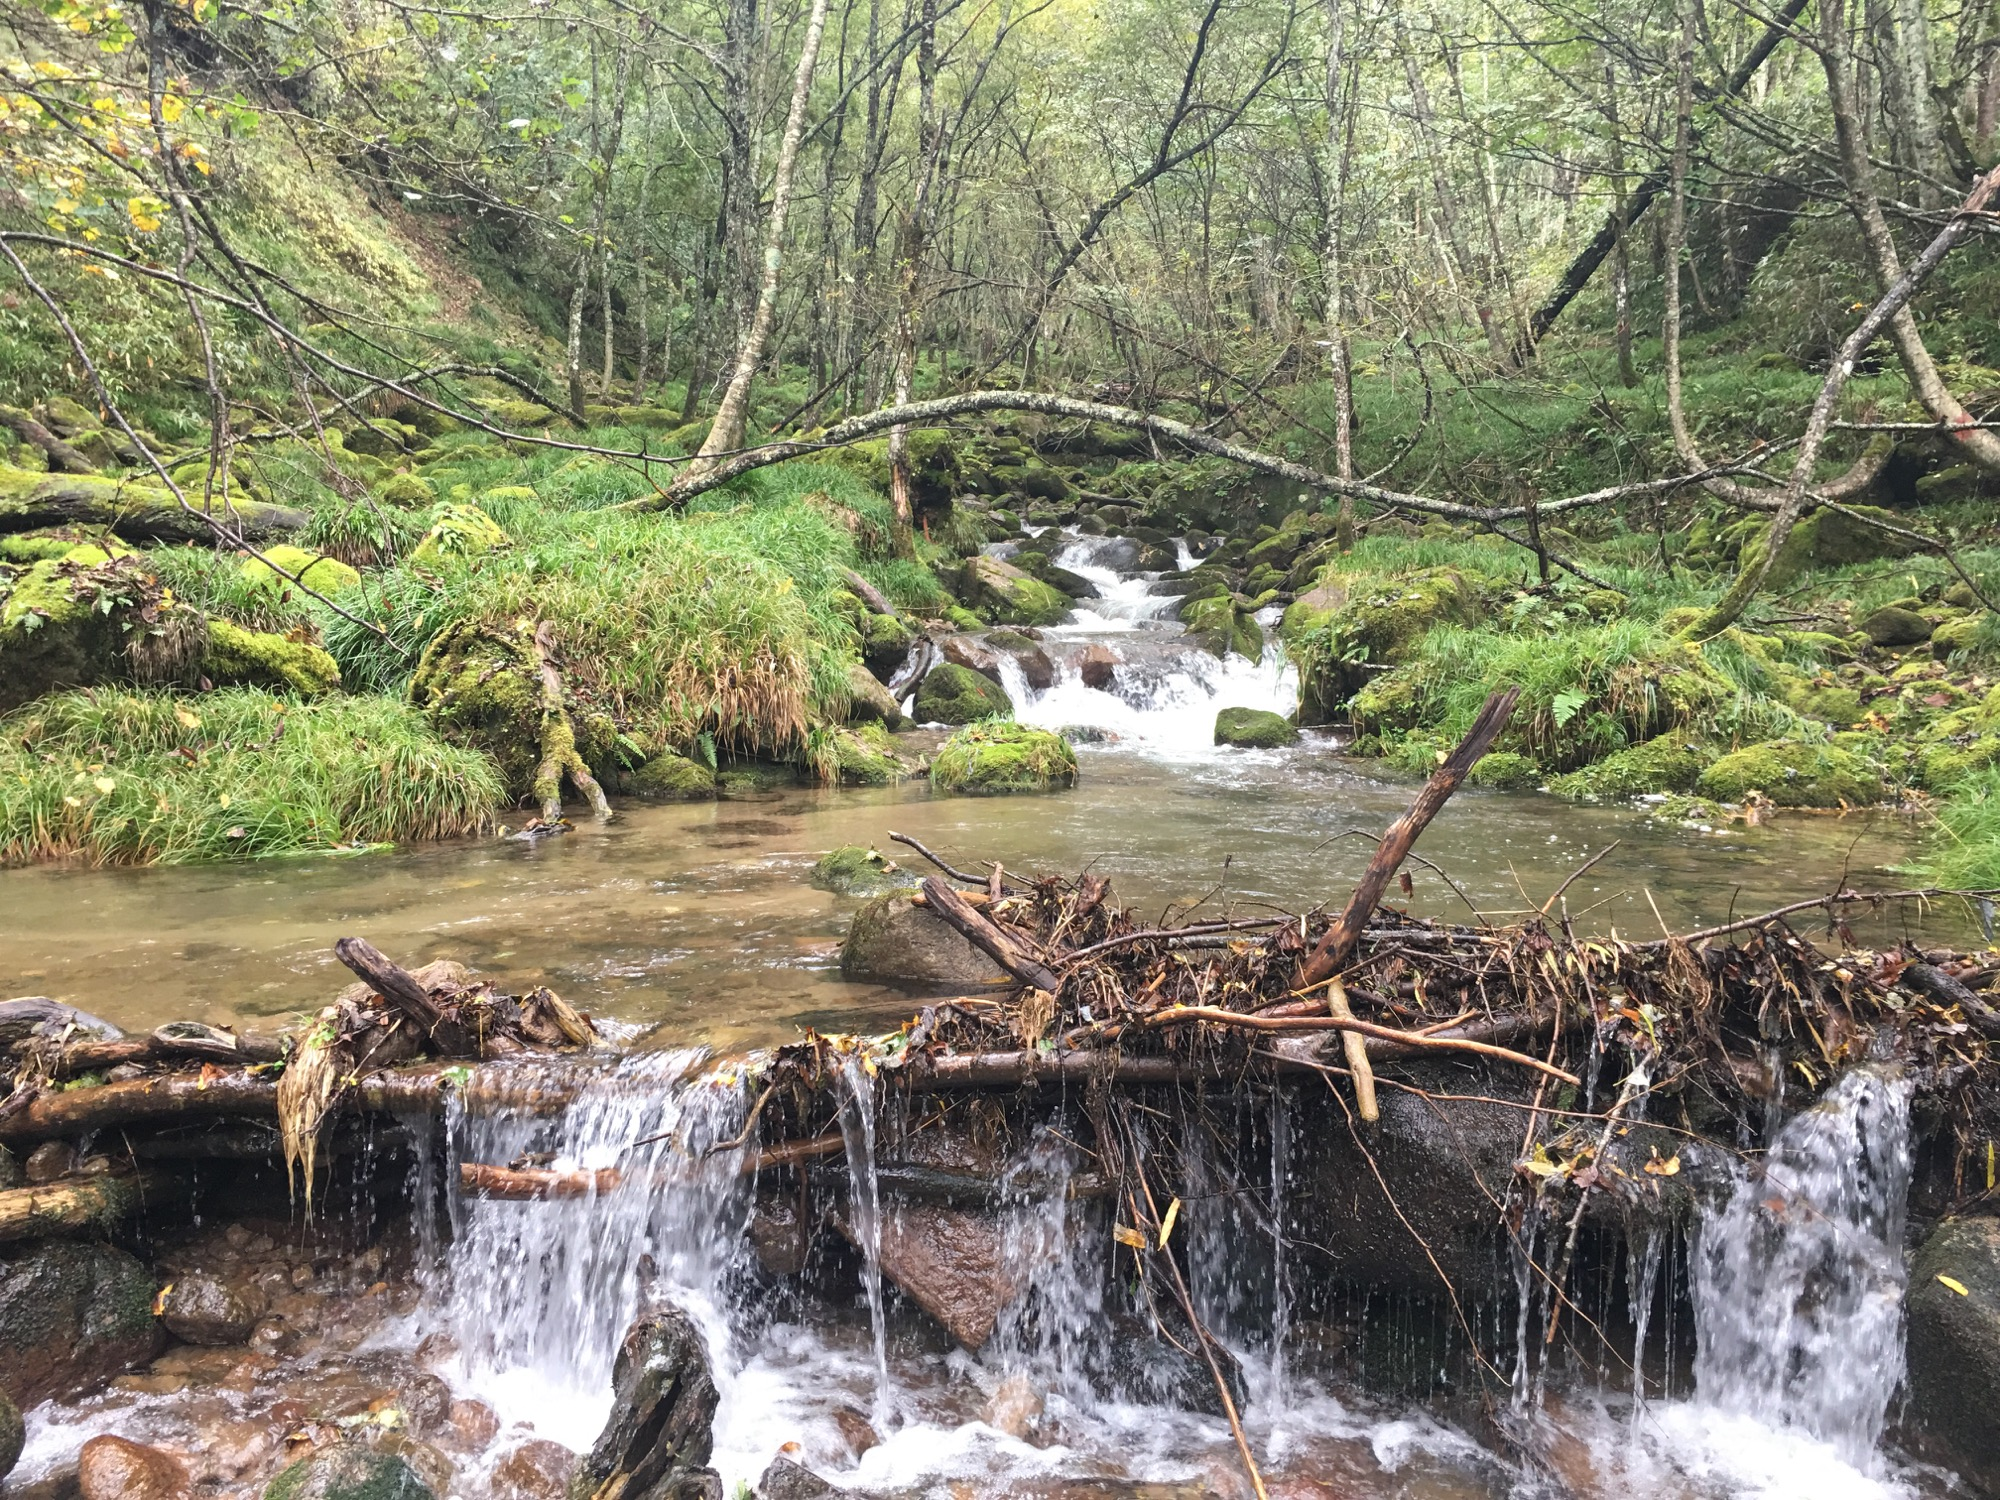 A lovely mountain stream